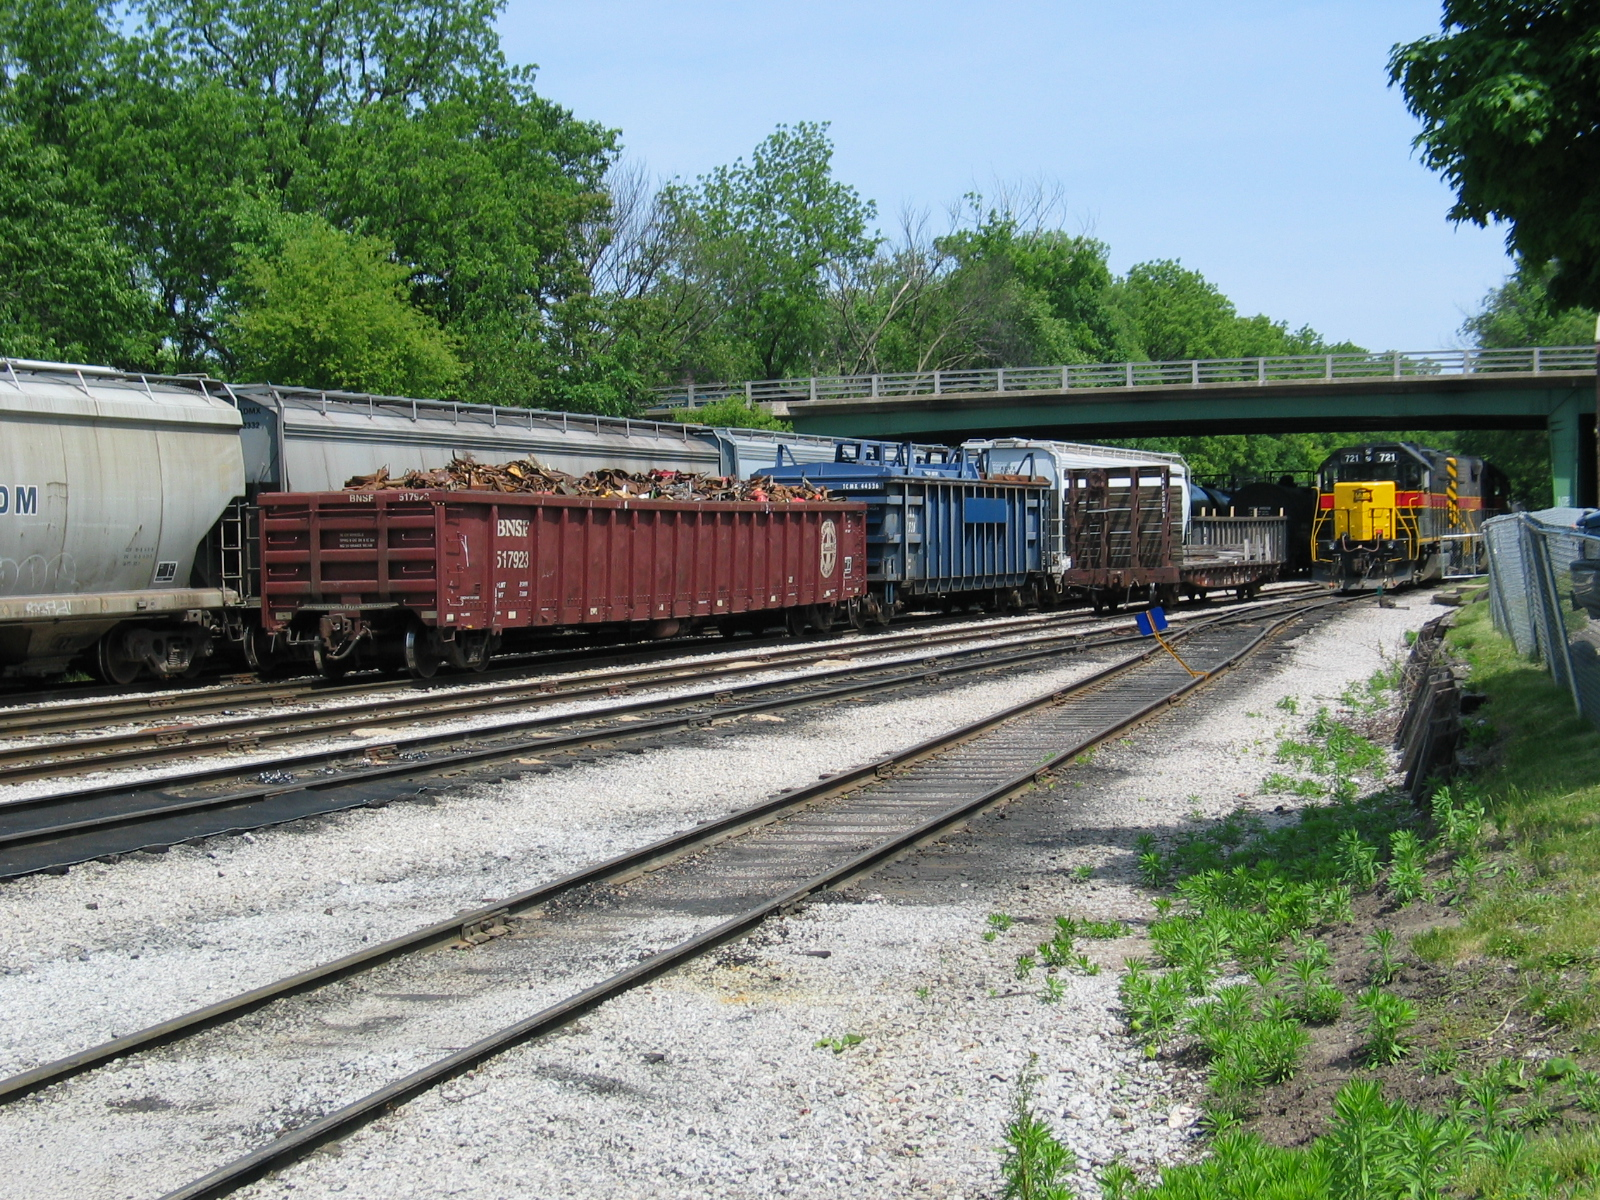 Iowa City yard, May 21, 2007.